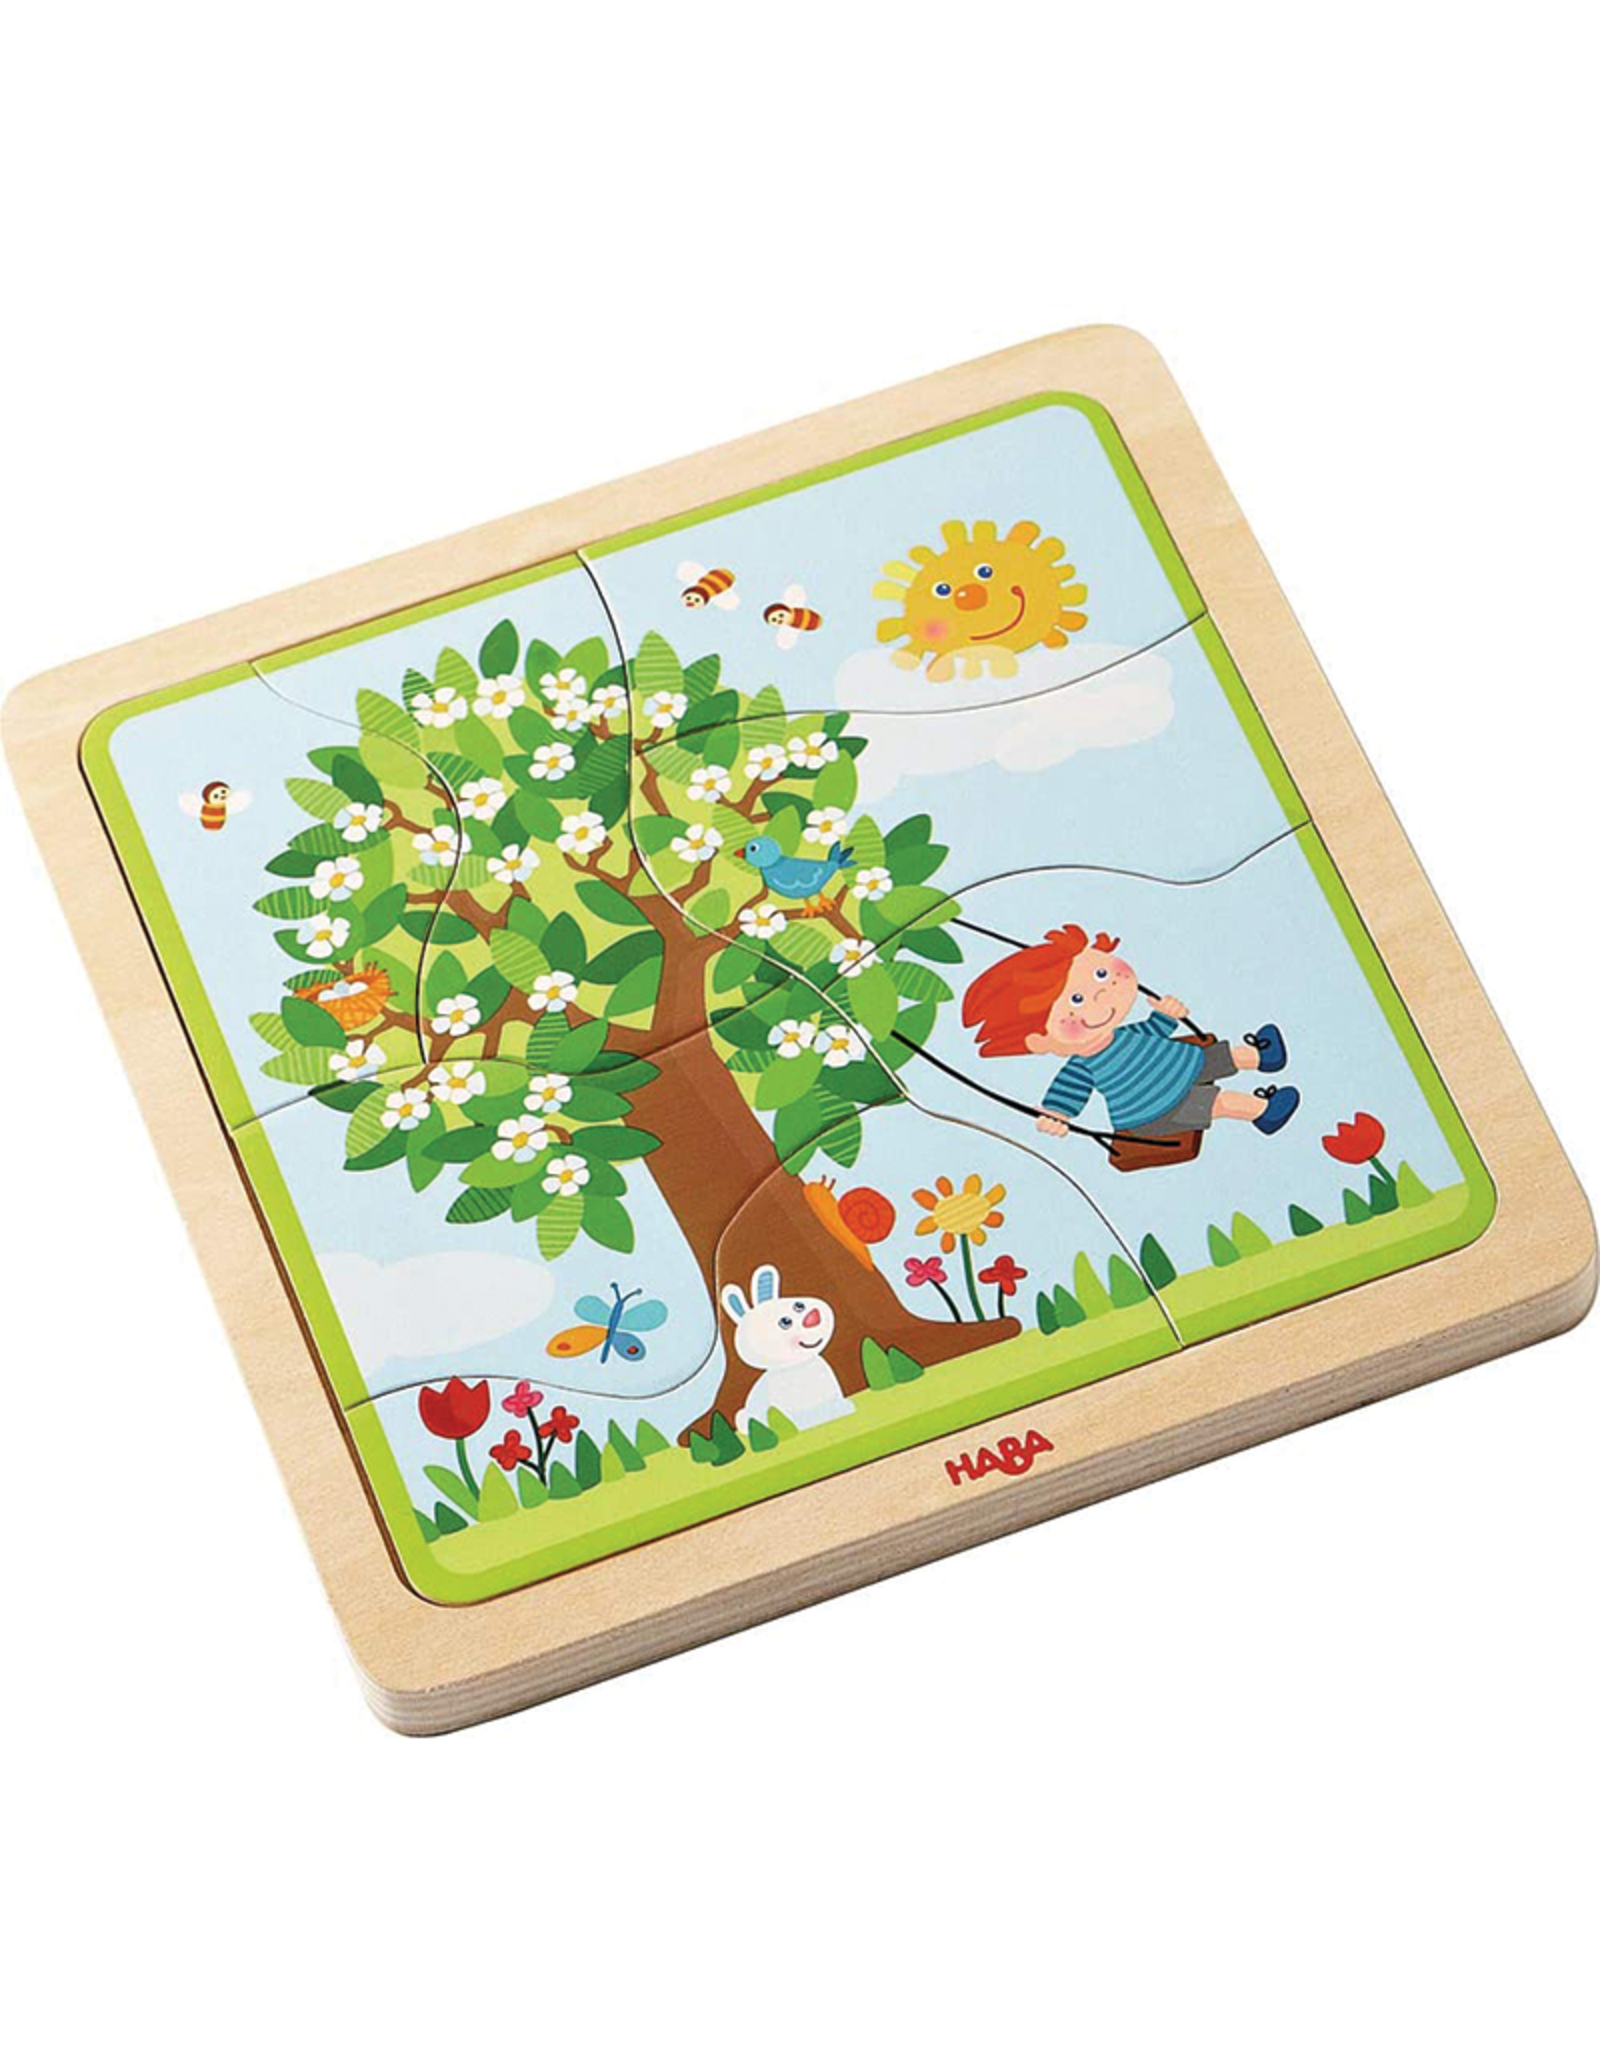 Haba Haba My Time of the Year Wooden Puzzle